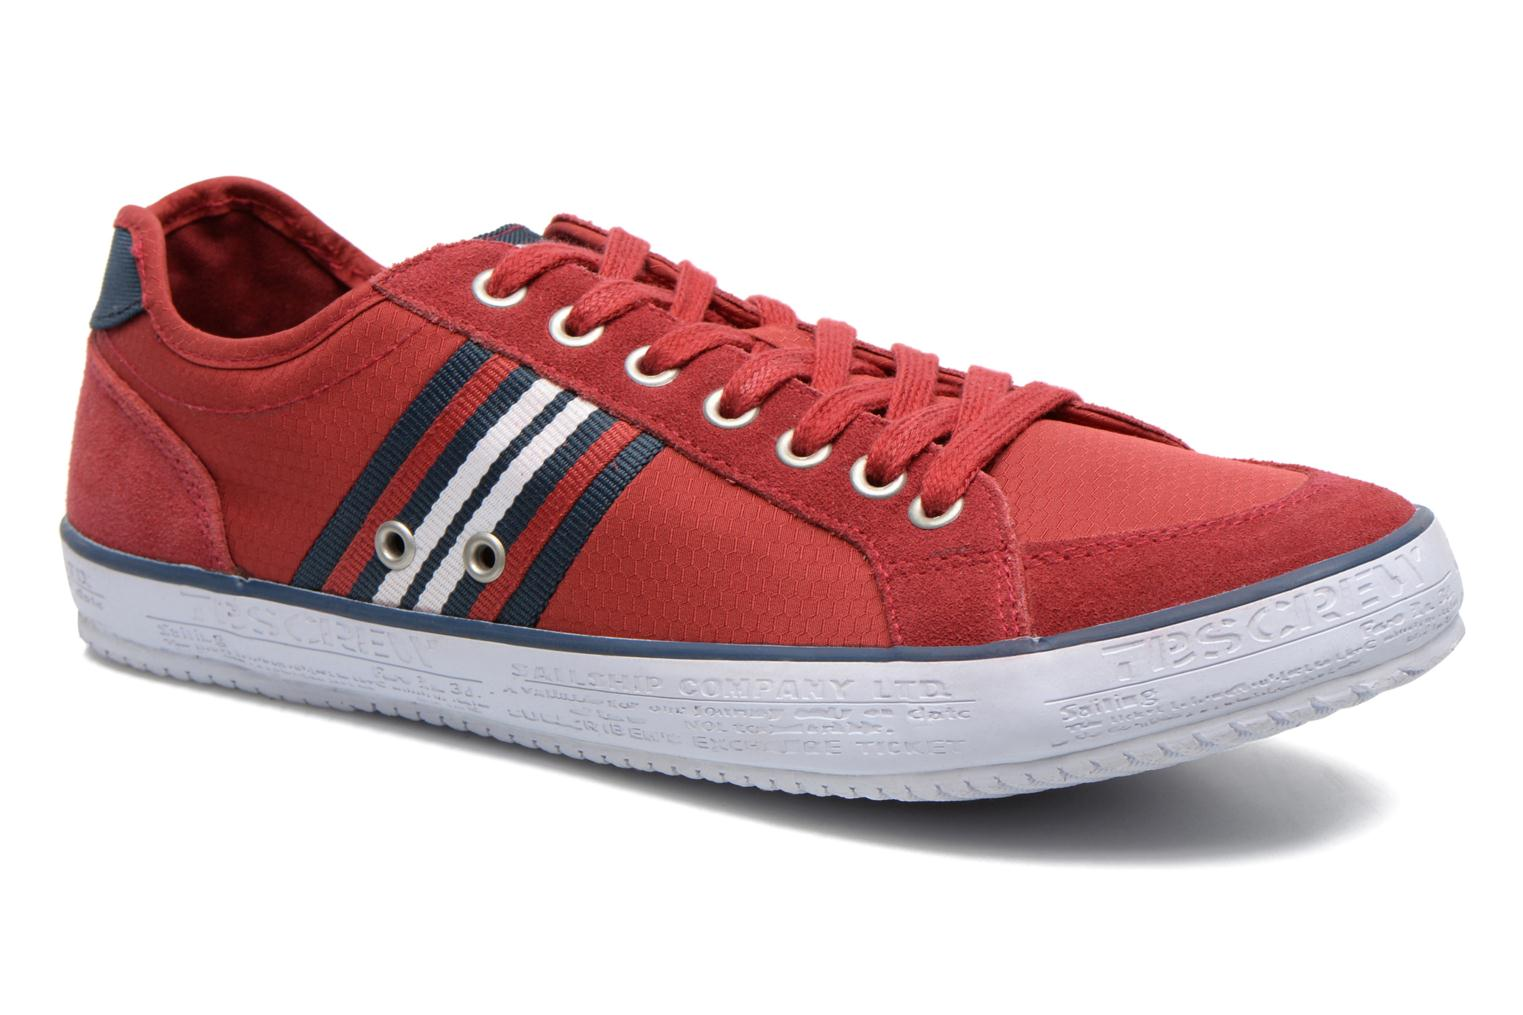 Sneakers Tornad by TBS